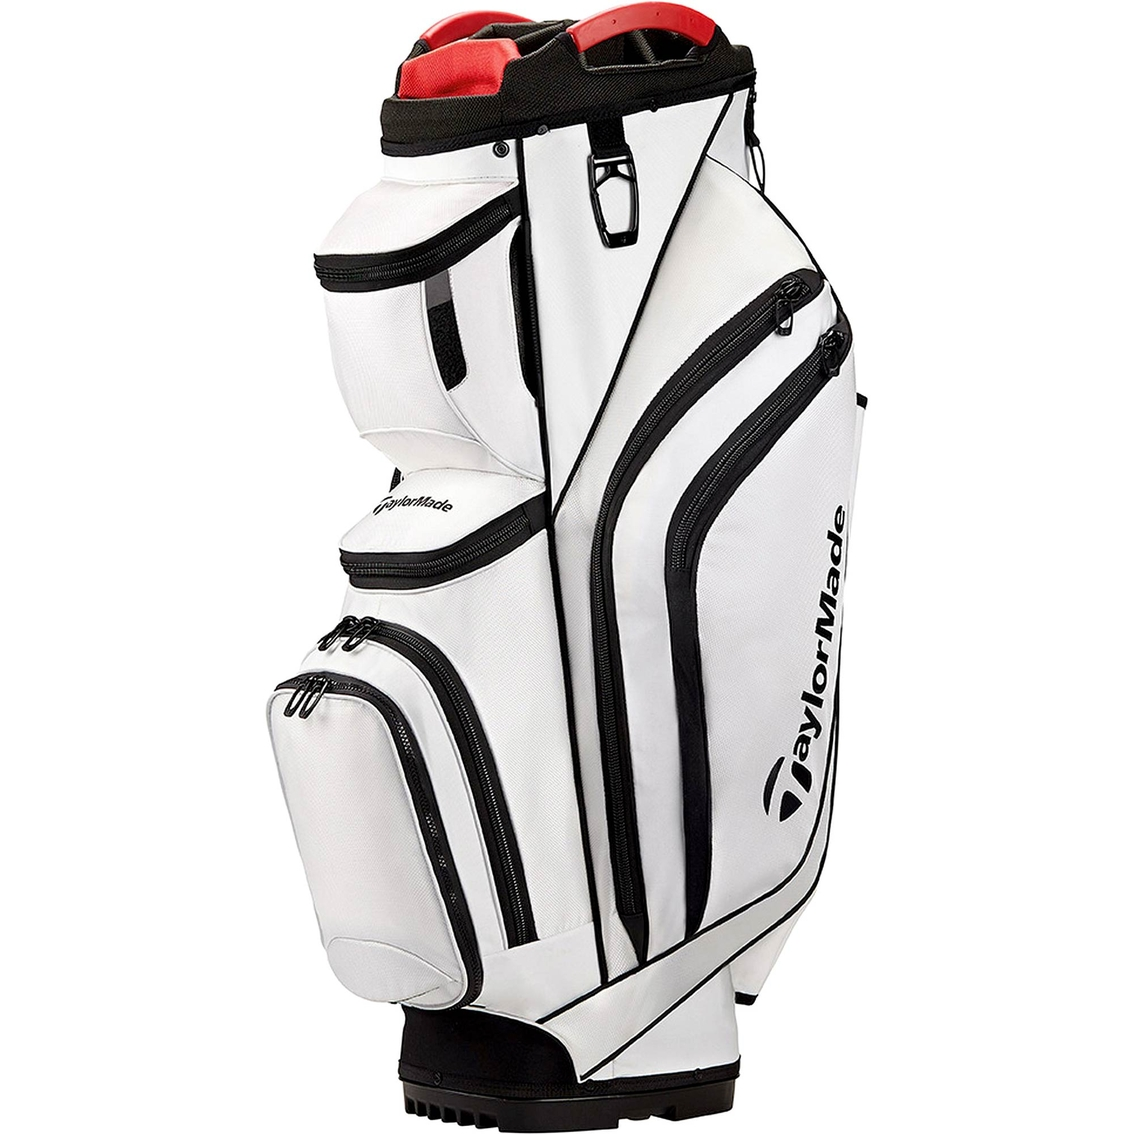 Drill Paddle Mixer likewise TaylorMade Catalina 3 0 Cart Bag Womens moreover Burs Diamonds also Product path 69 product id 56 moreover 3635150. on golf course accessories supplies